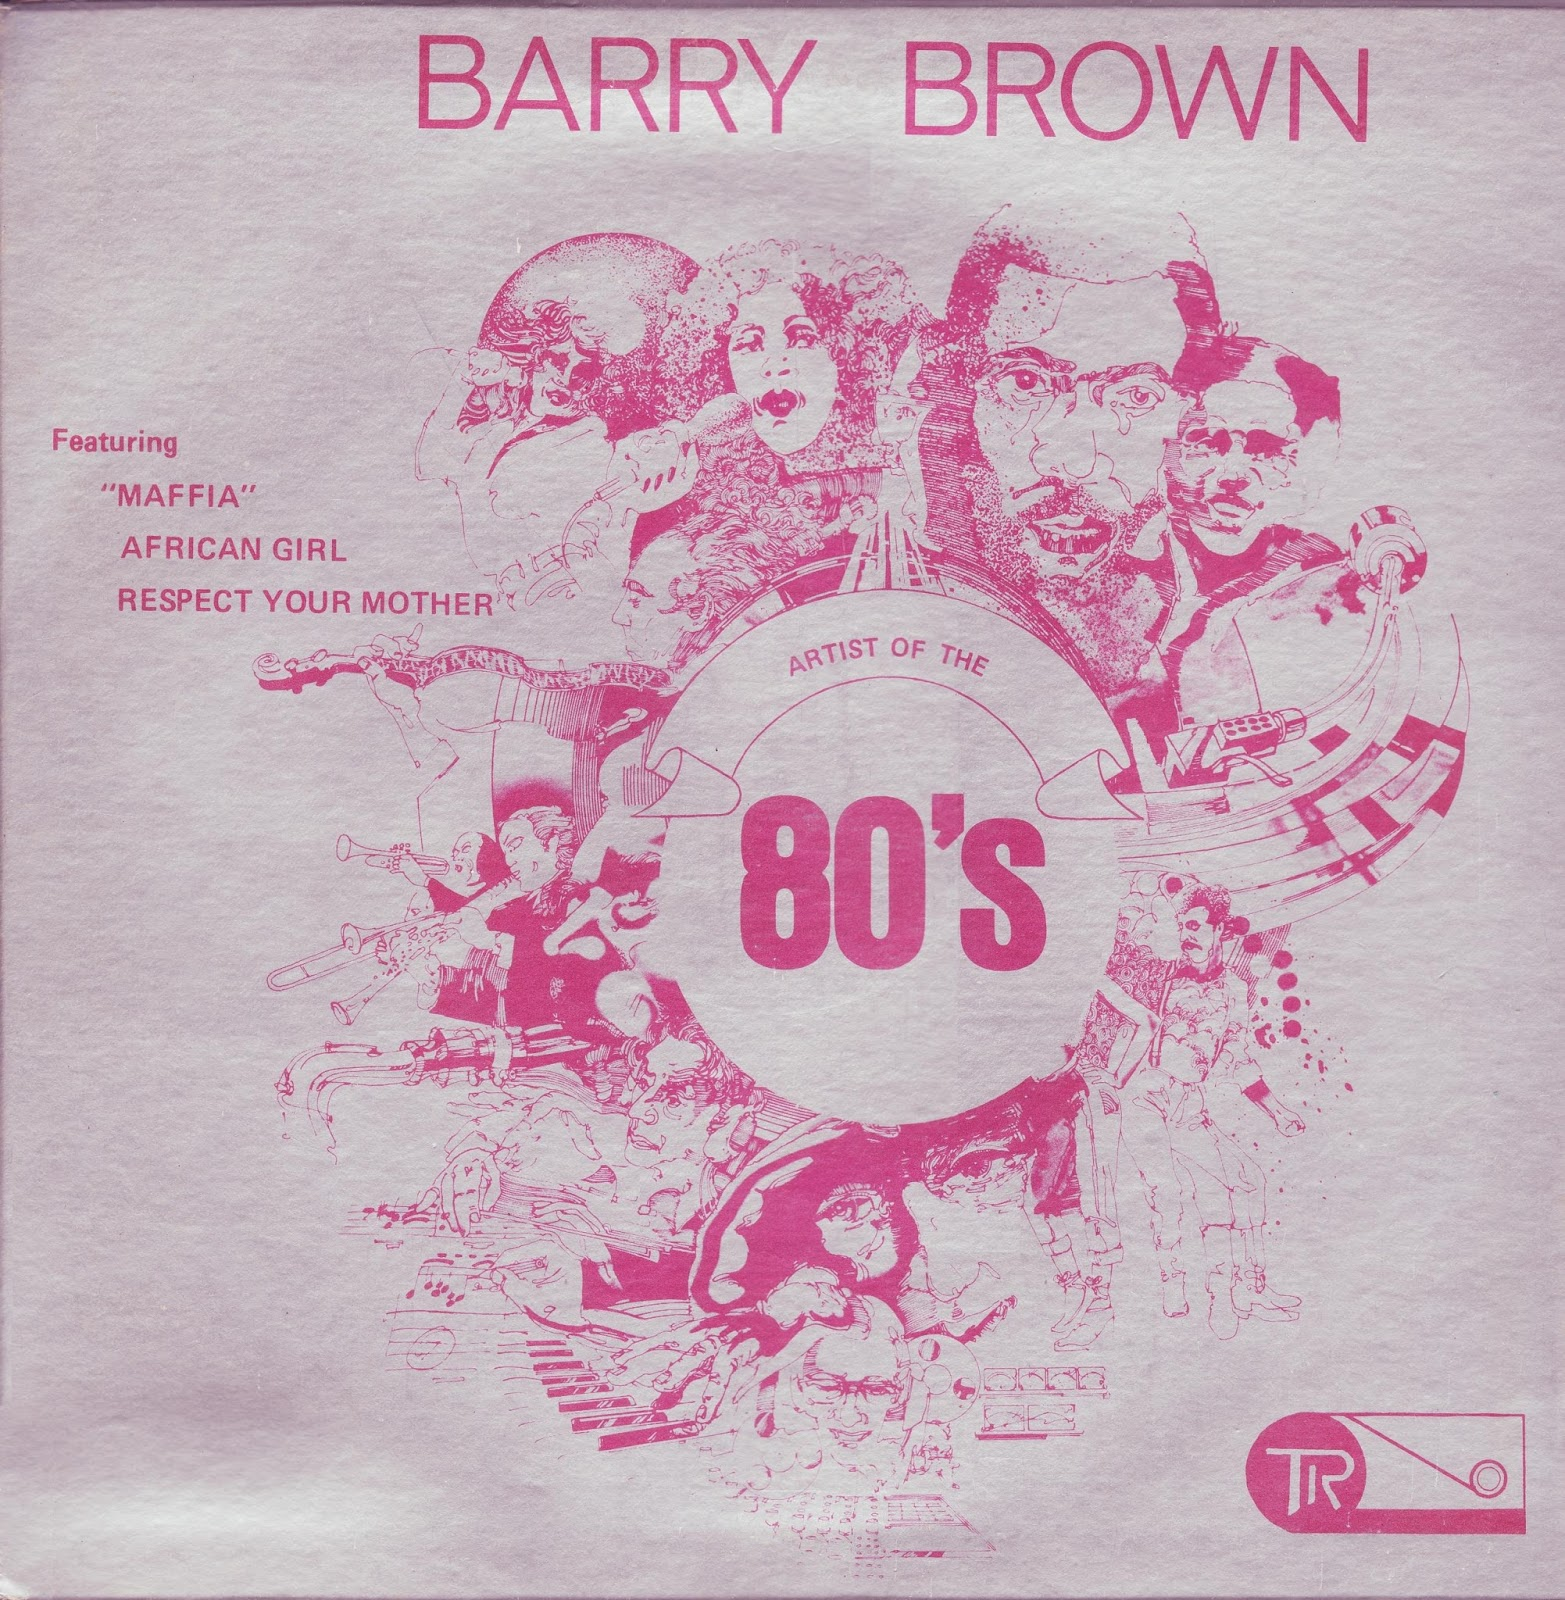 Barry Brown Maffia Artist Of The 80s